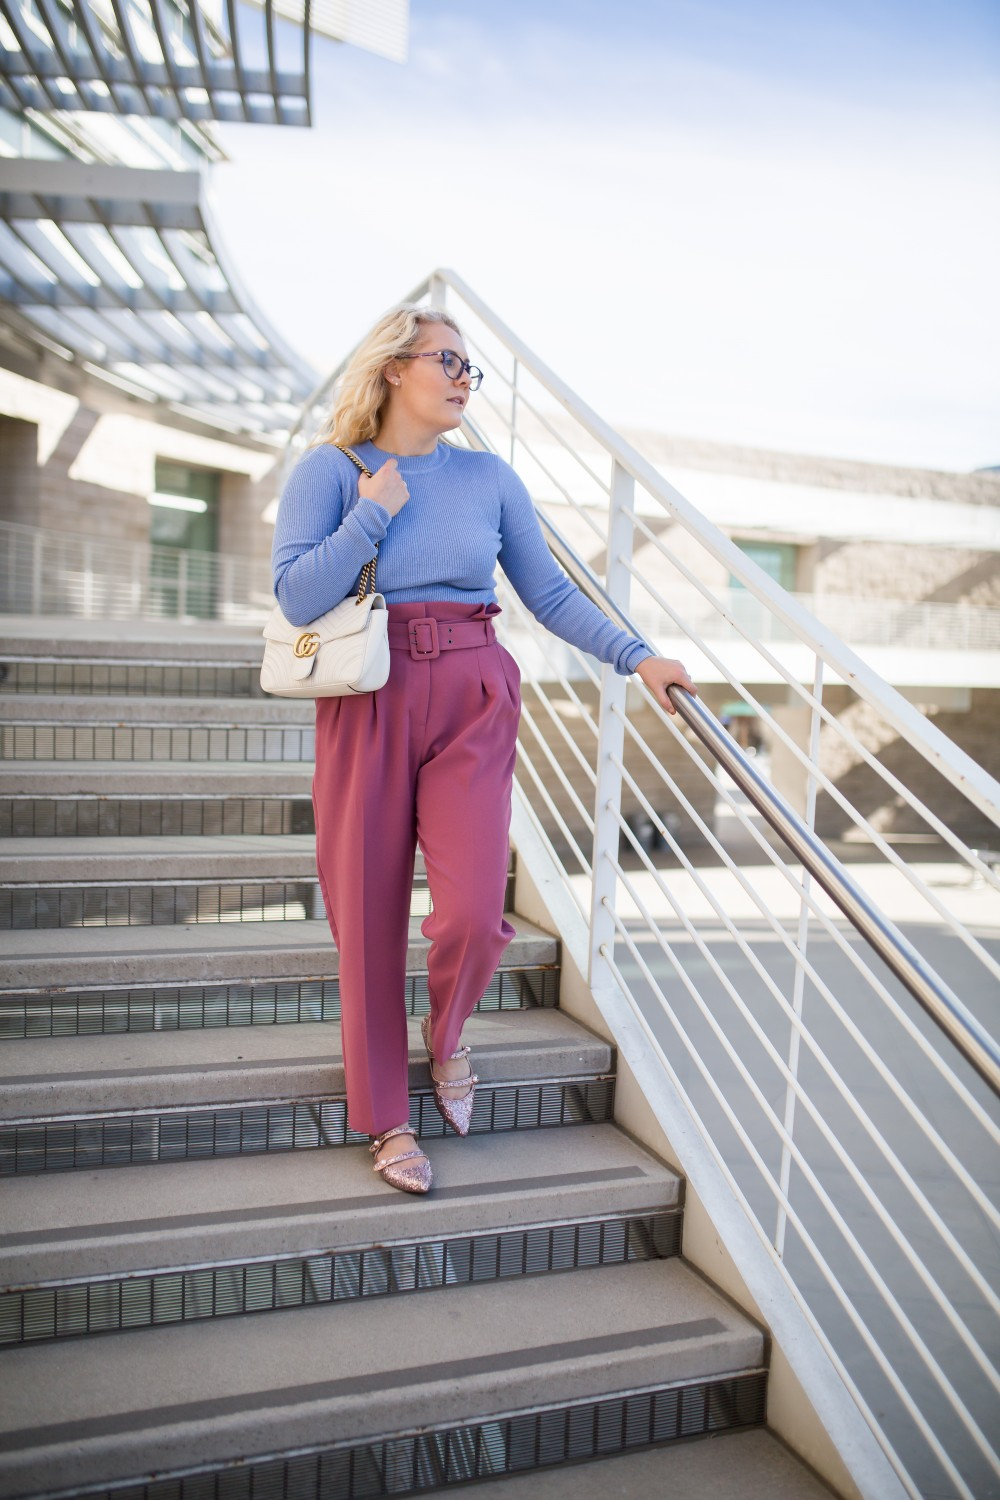 Girl wearing glasses periwinkle blue sweater and blush pink pants